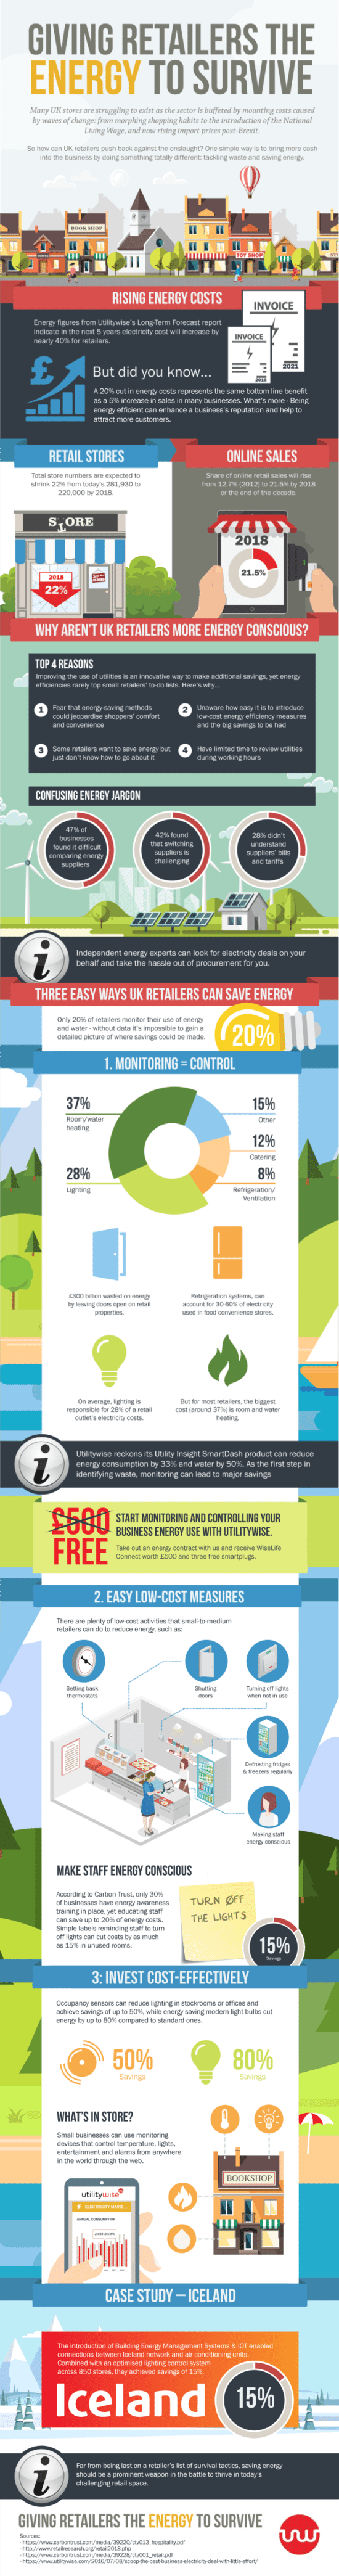 Retail Energy Usage Infographic - Utilitywise